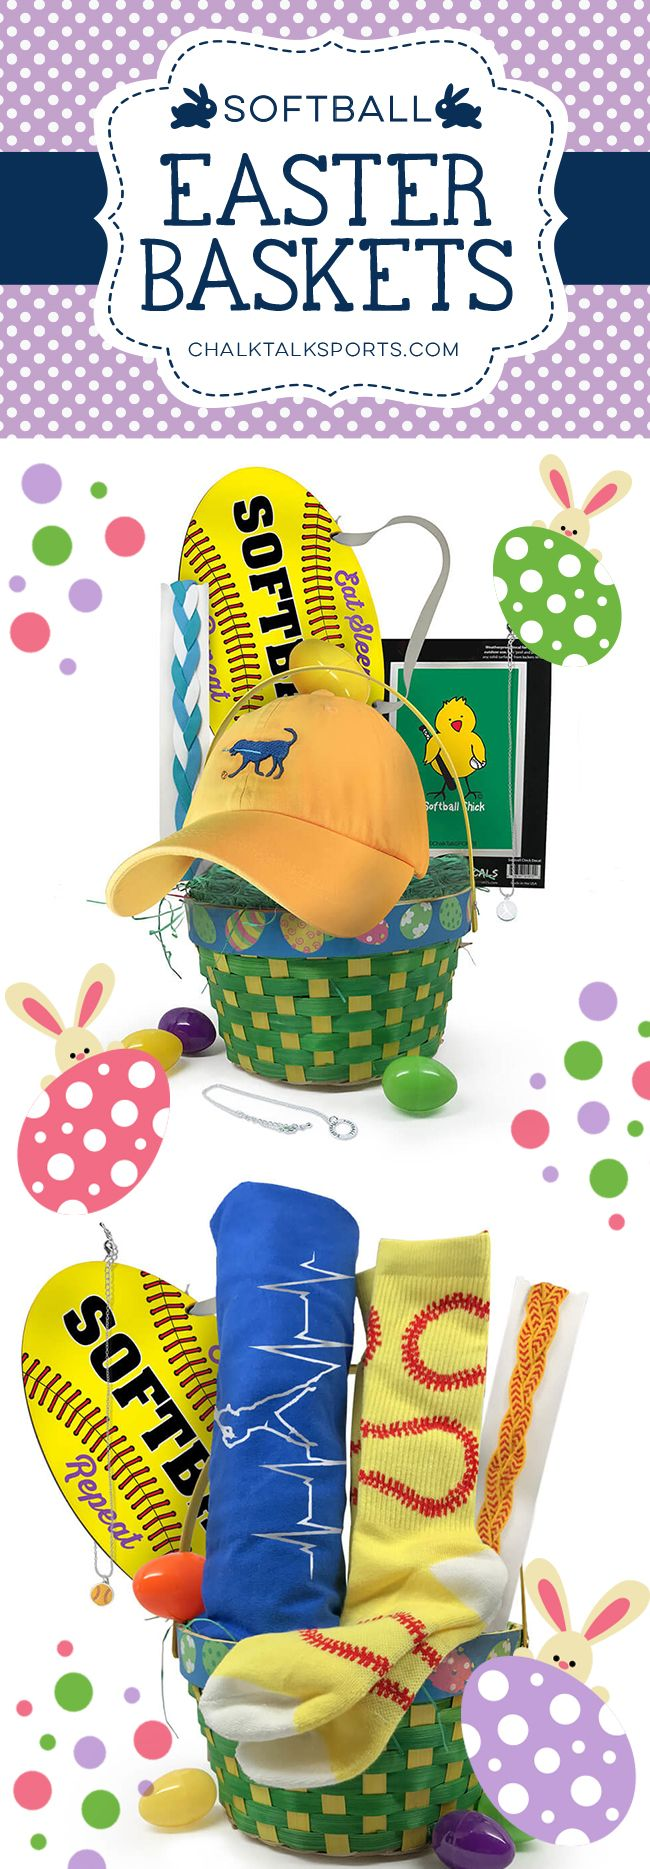 Softball players will love our softball Easter baskets. They're filled with special hand-picked goodies they'll be sure to love!